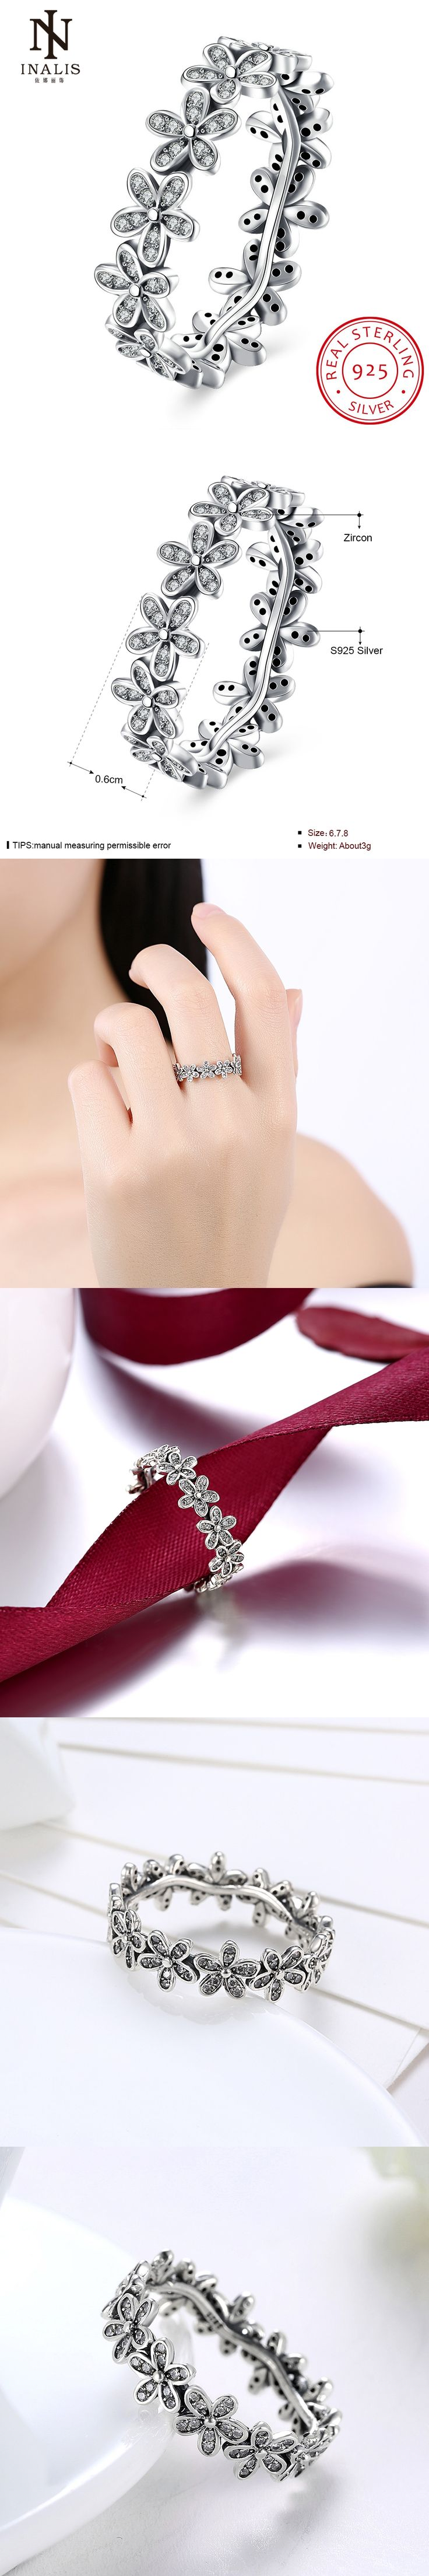 INALIS 2017 New Arrival Wholesale Cheap Silver Color Popular Flower Finger Ring Fashion Wedding Jewelry 3 Size